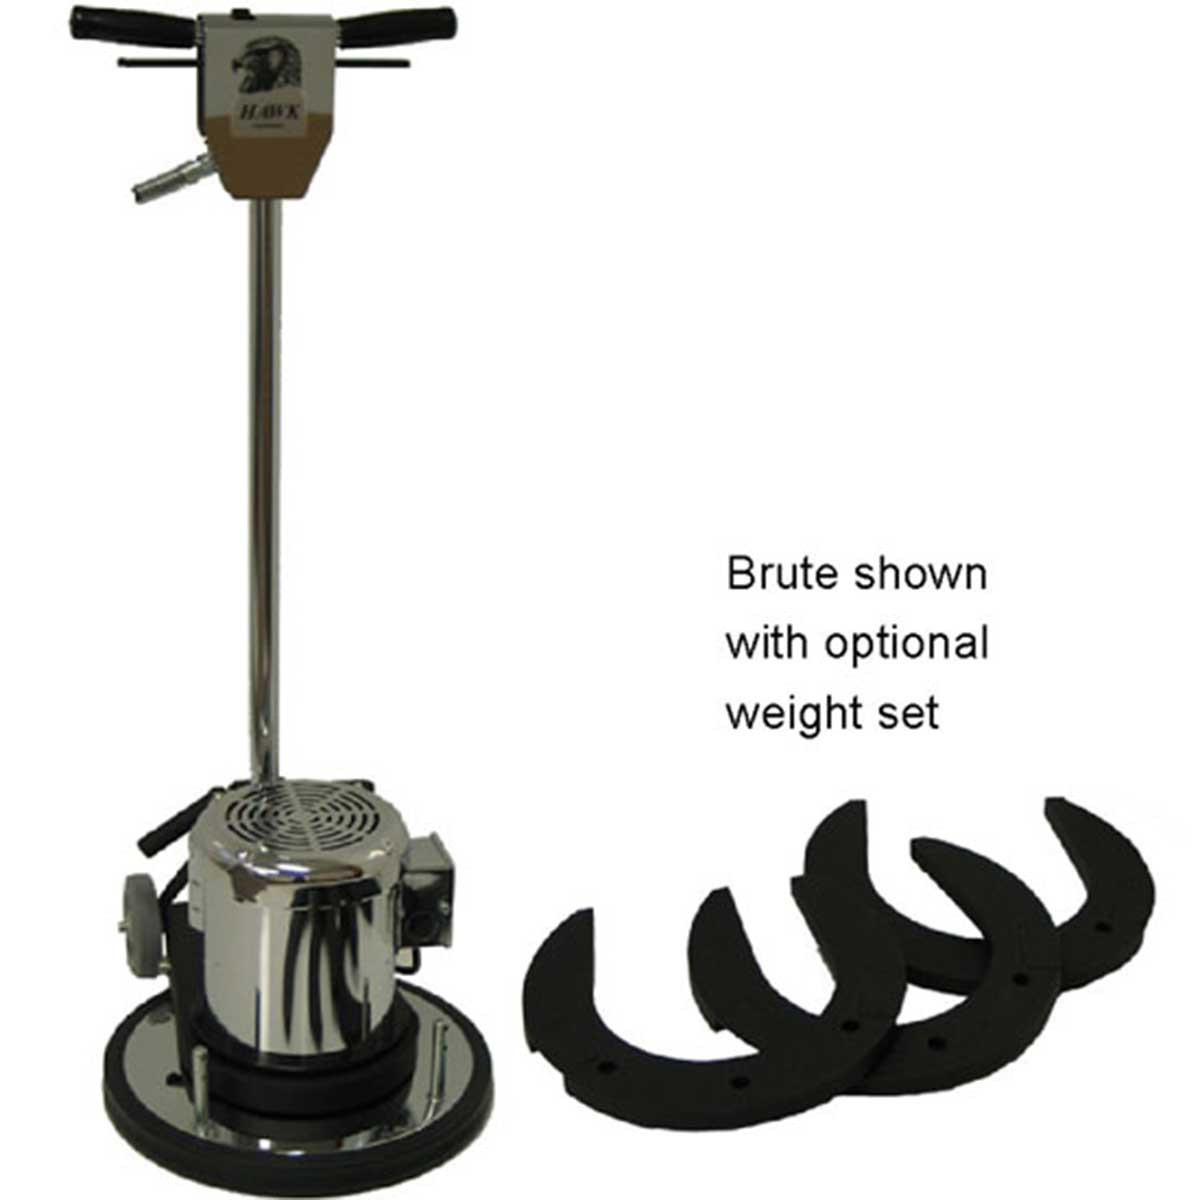 hawk brute with weight set